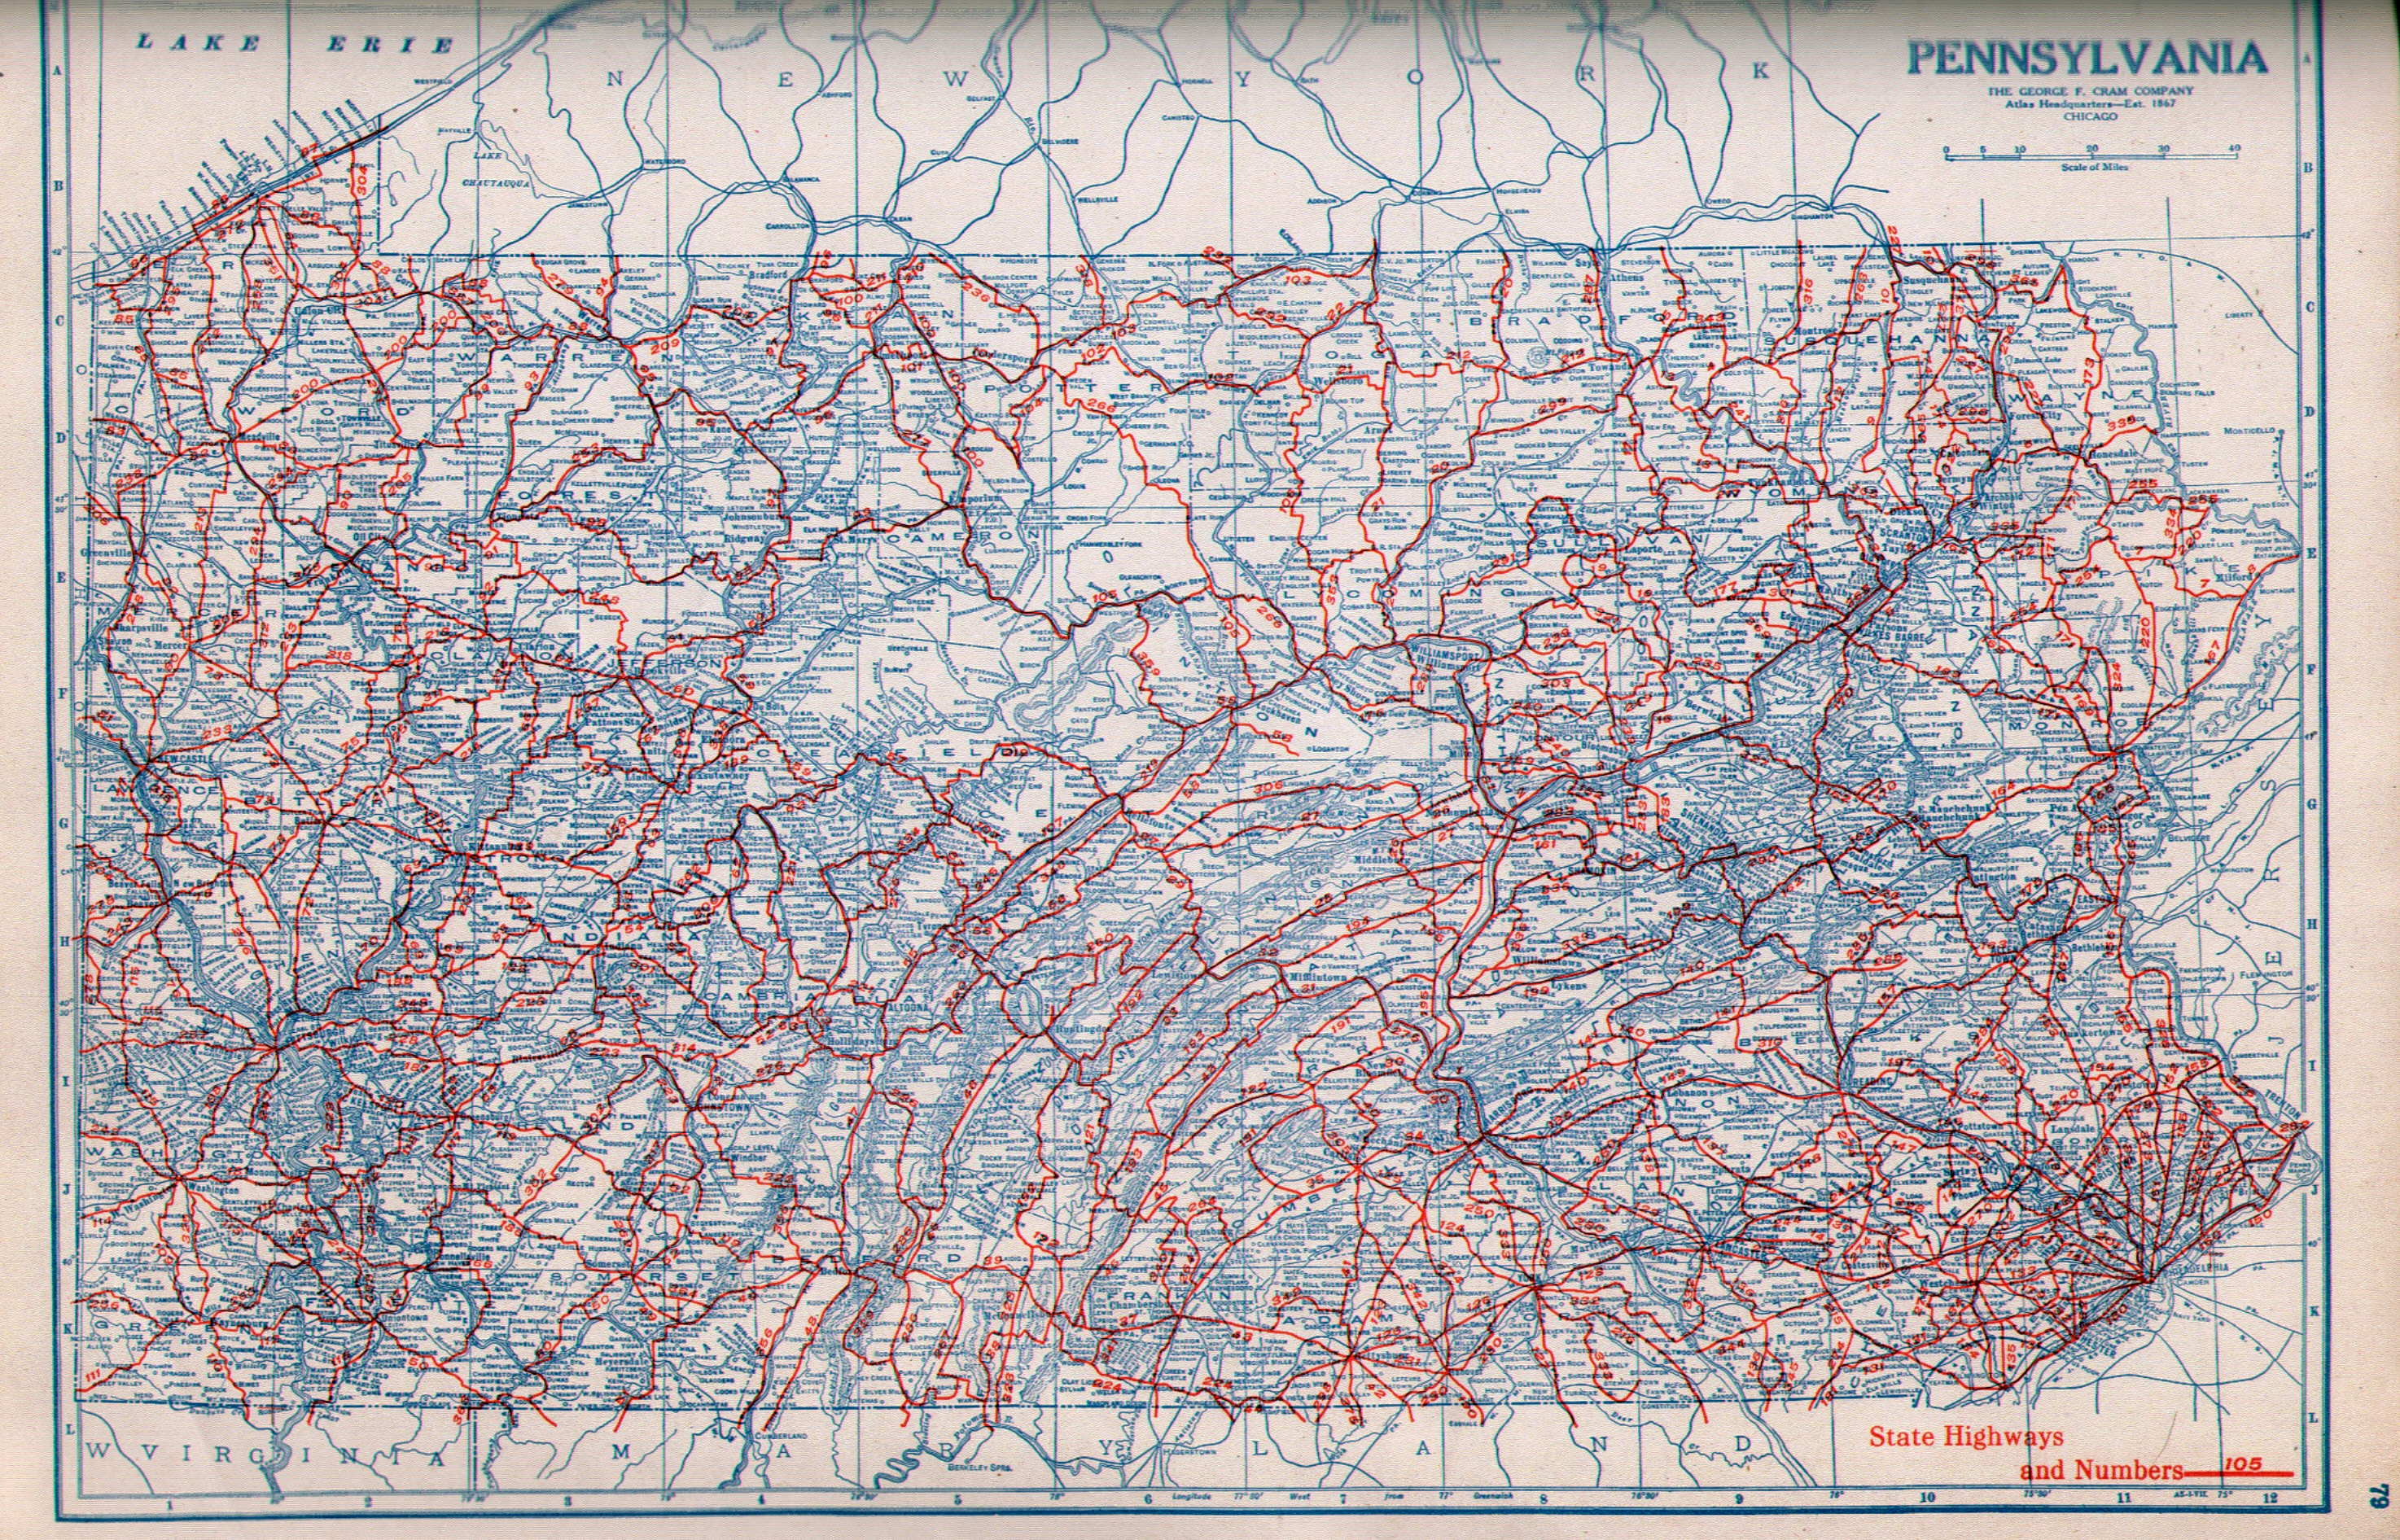 A Commercial Map Showing Rail Lines With Trolley Or Electric Lines In Red This Atlas Was Issued Undated From 1922 To Around 1926 And The Various